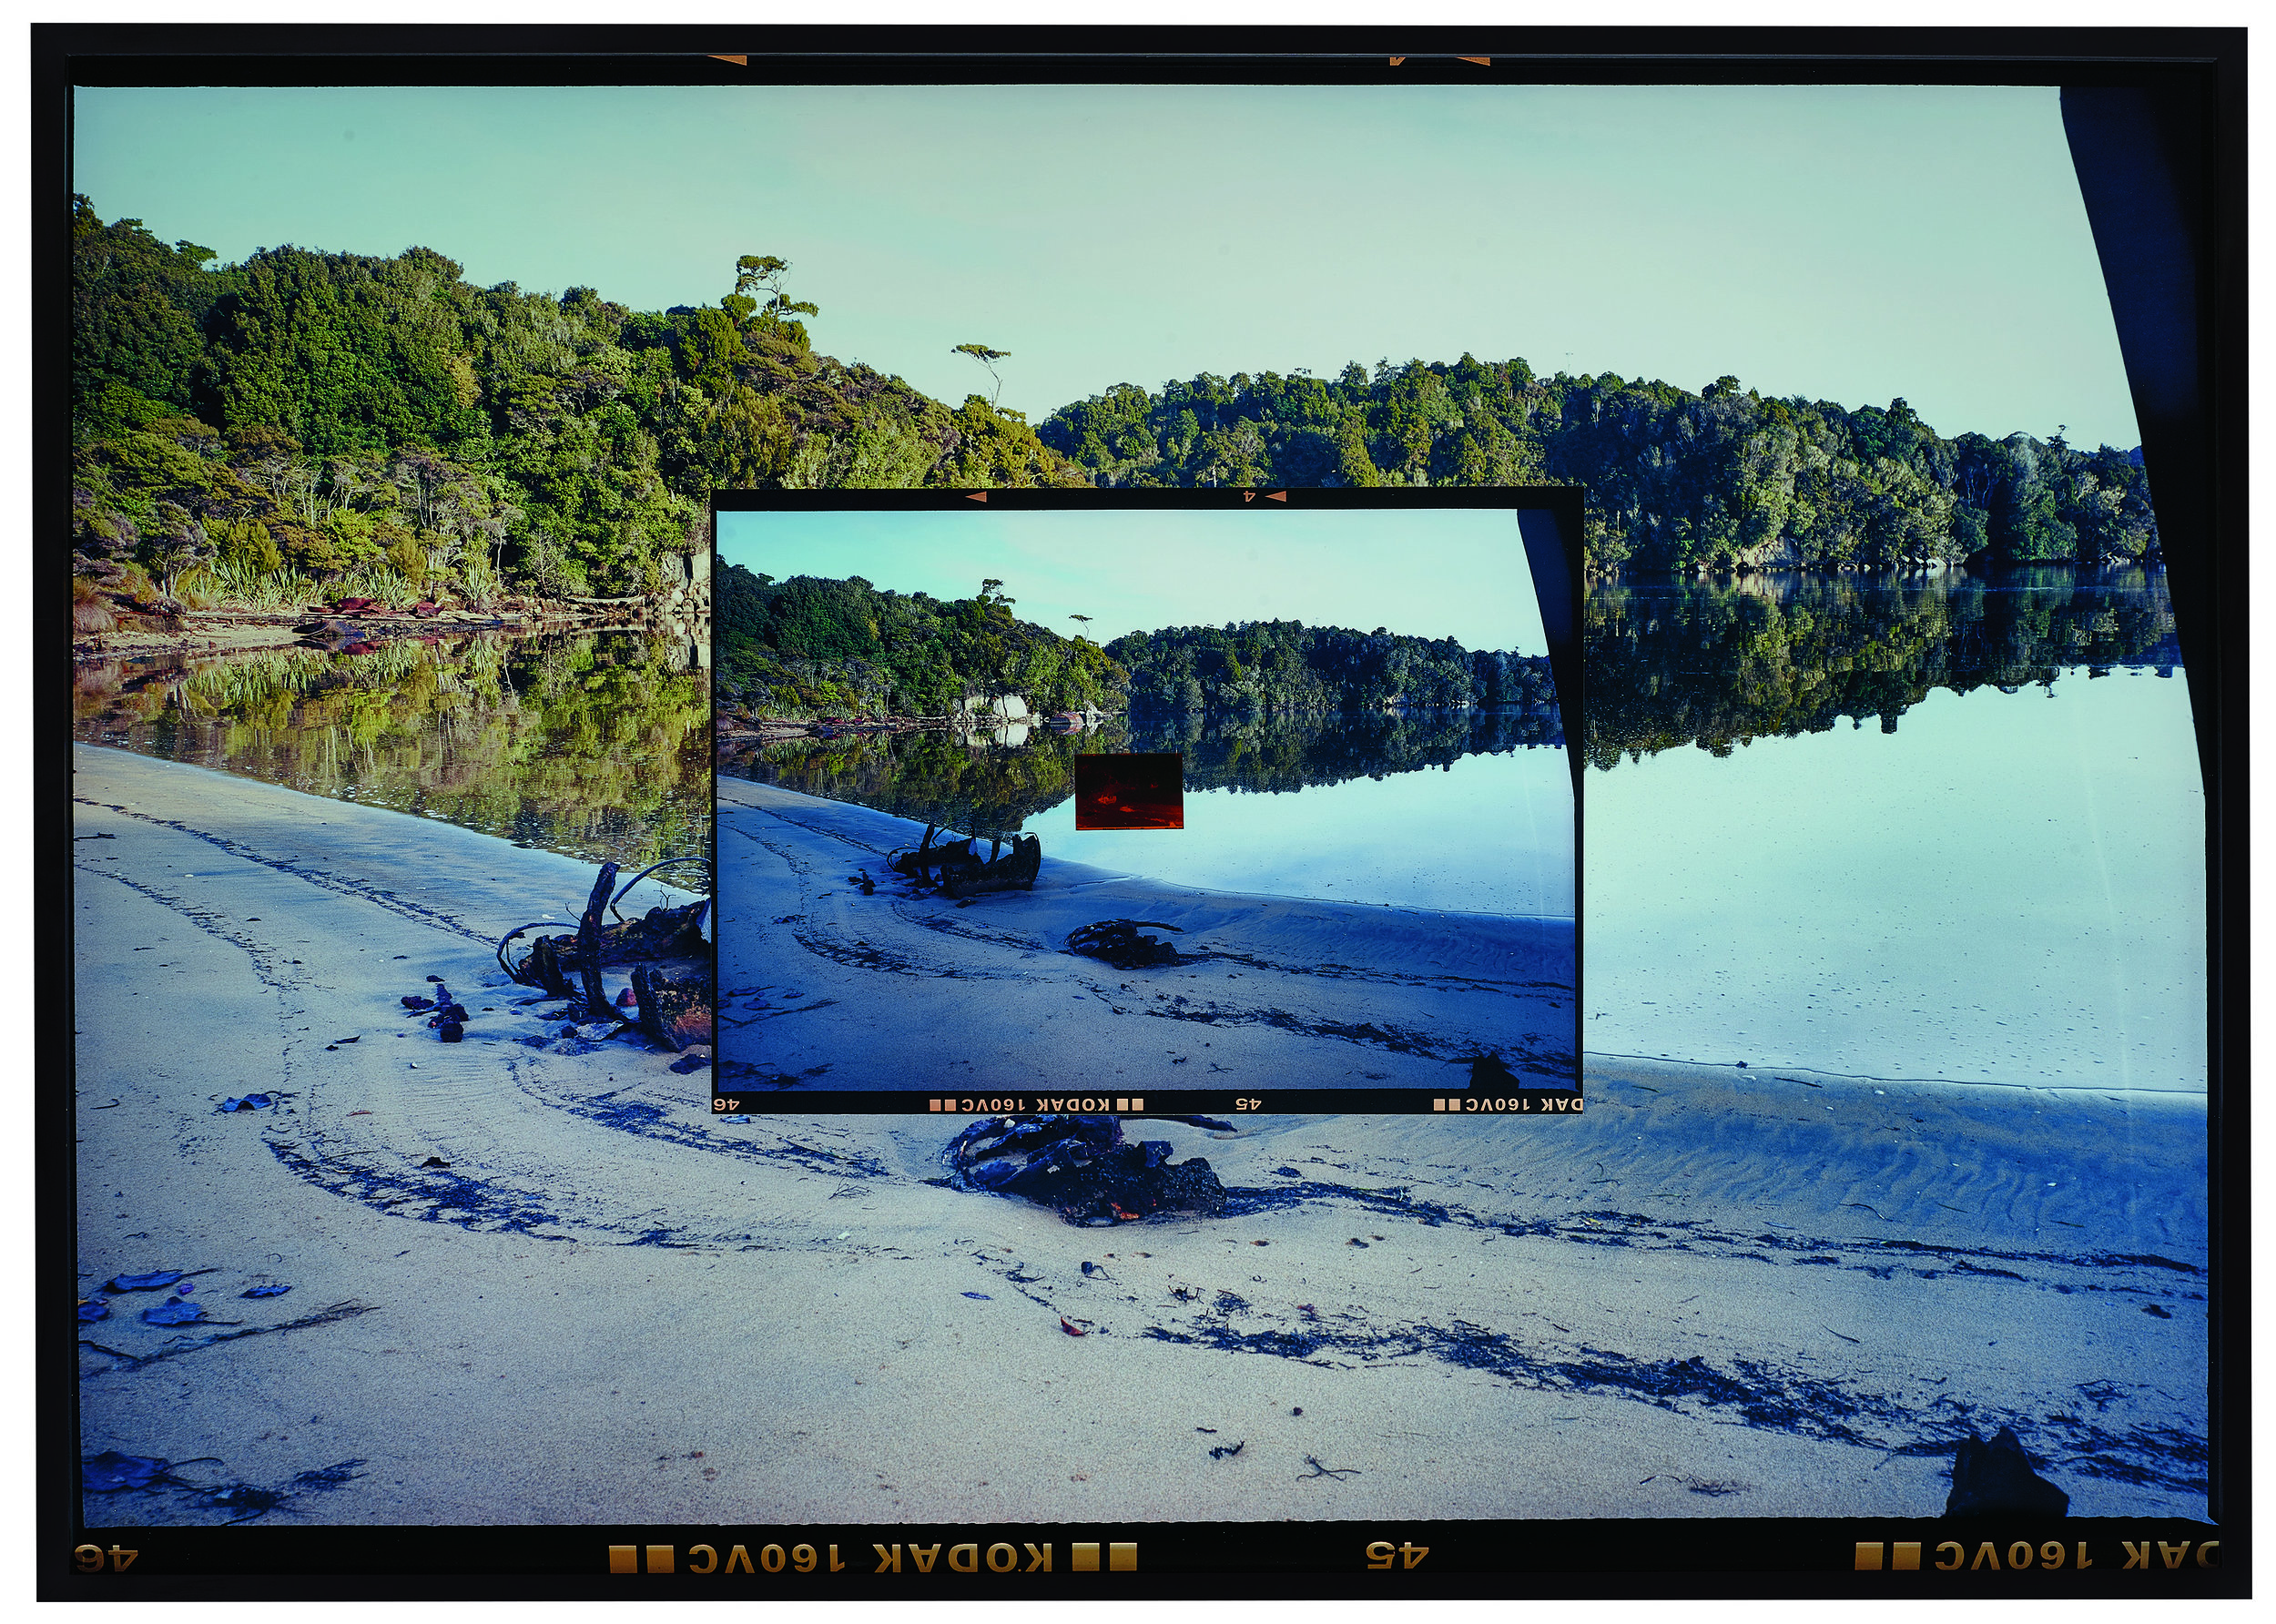 KODAK (Double Shell), 2004/2017 - Chromogenic print on matt and gloss Kodak Endura paper, 160 VC Kodak negative146 x 182 cmunique